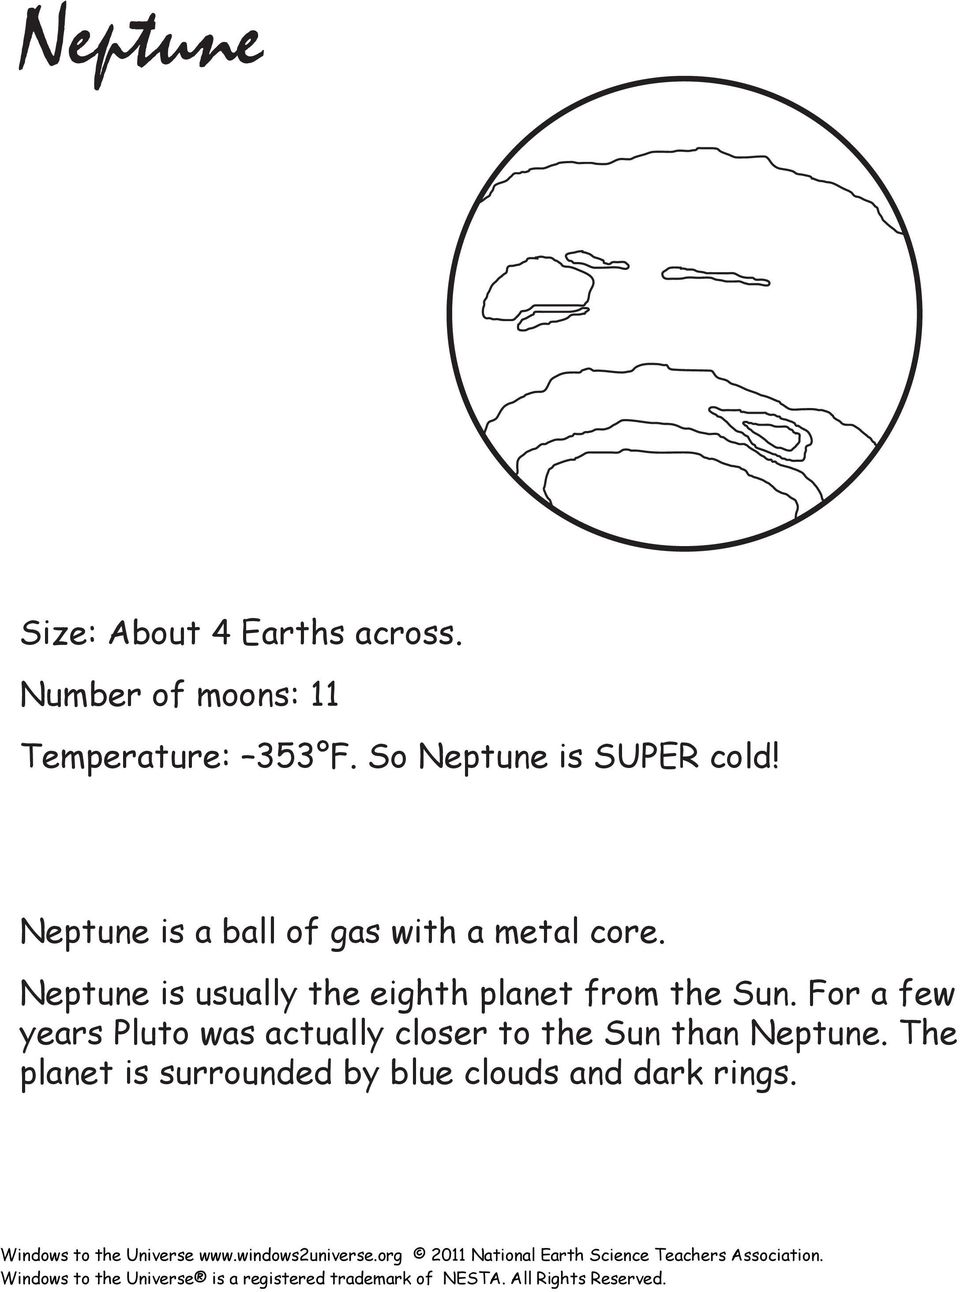 Neptune is usually the eighth planet from the Sun.